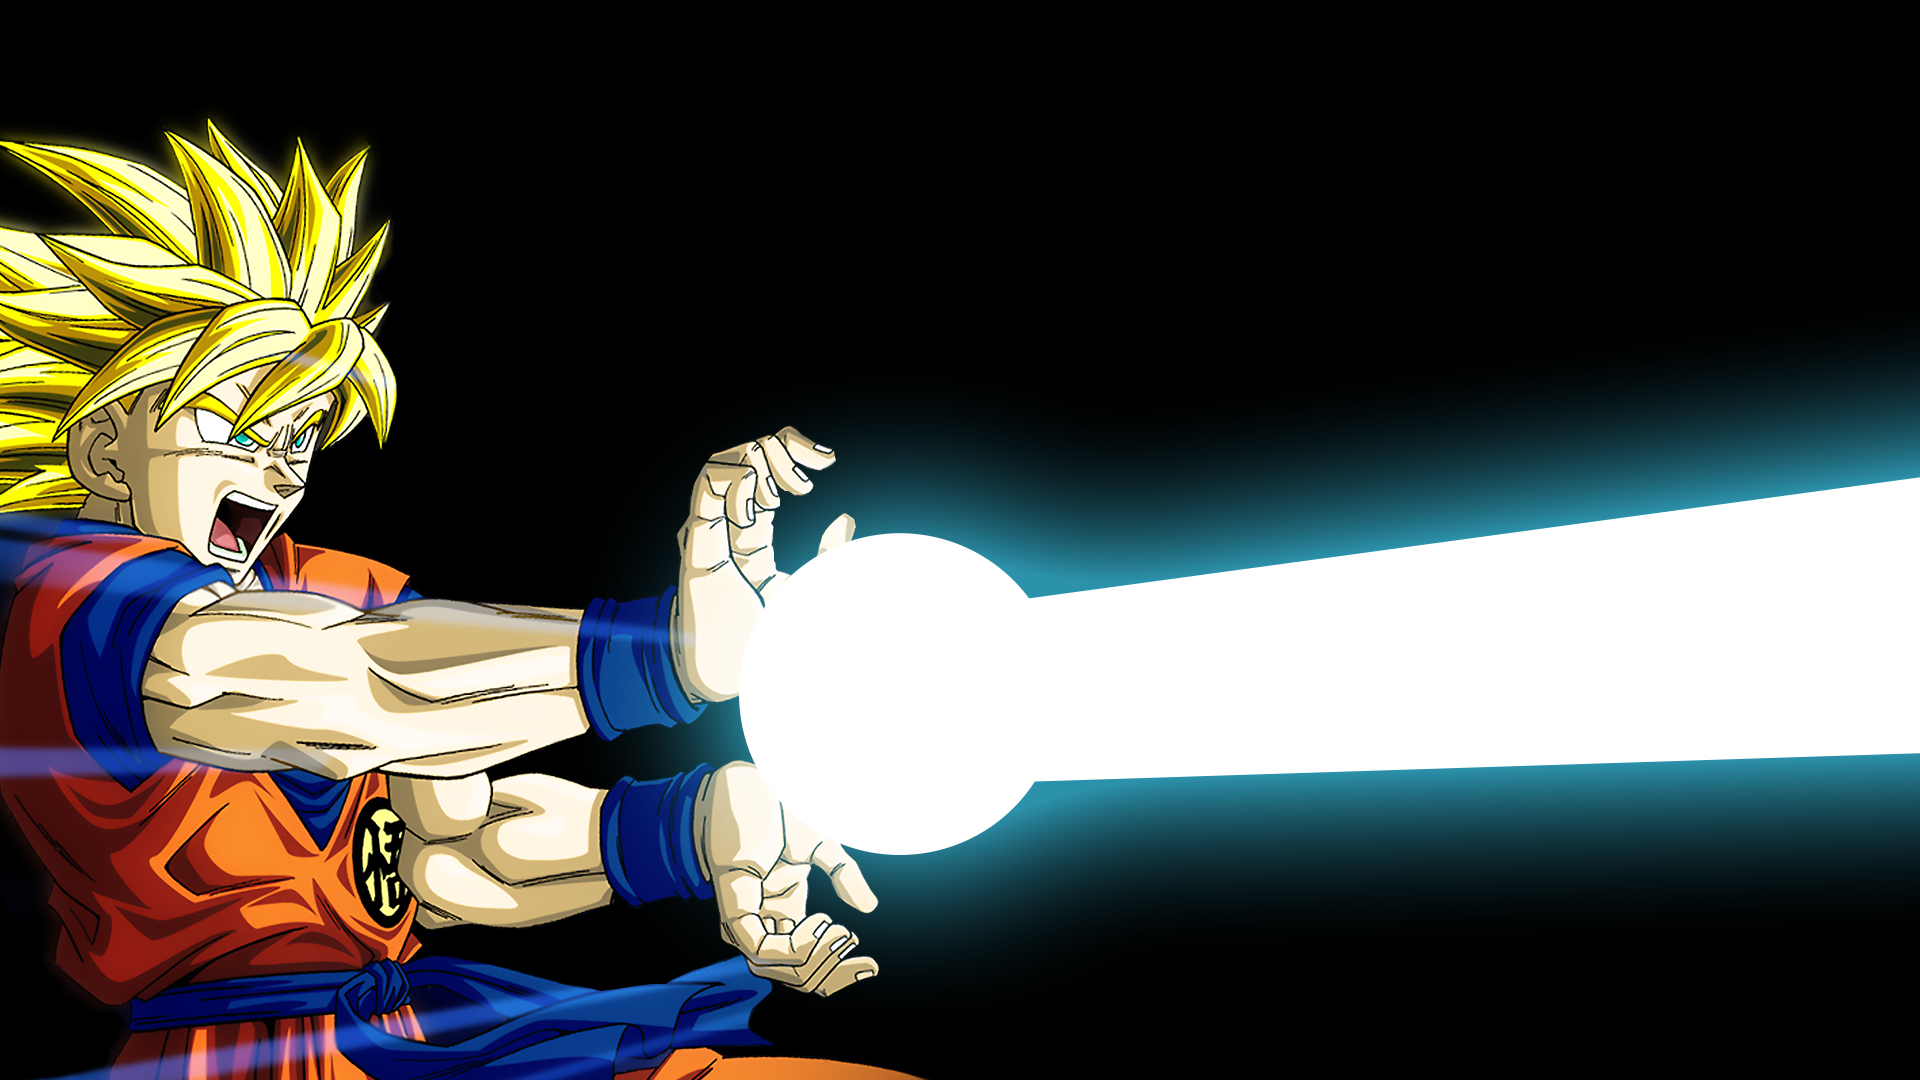 Coders Wallpaper Abyss Explore the Collection Dragon Ball Anime Dragon 1920x1080